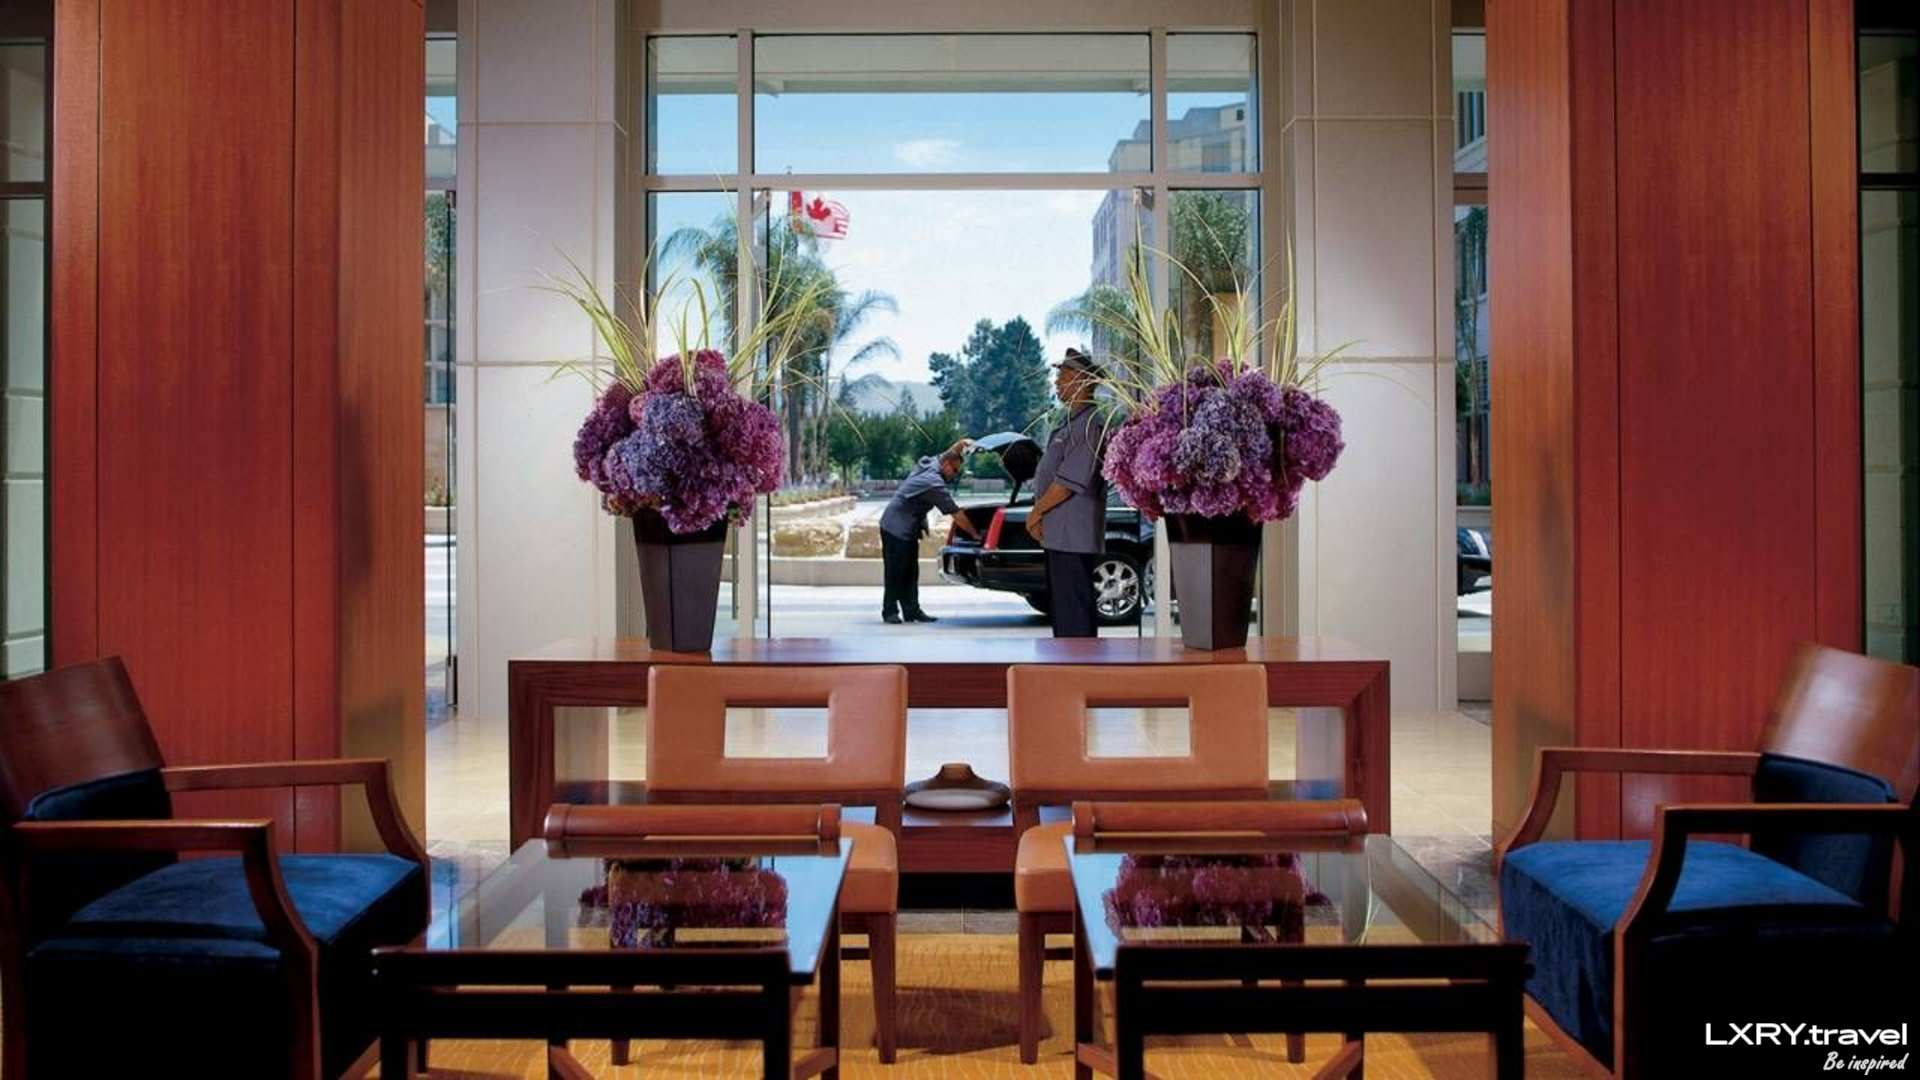 Four Seasons Hotel Silicon Valley at East Palo Alto 31/35